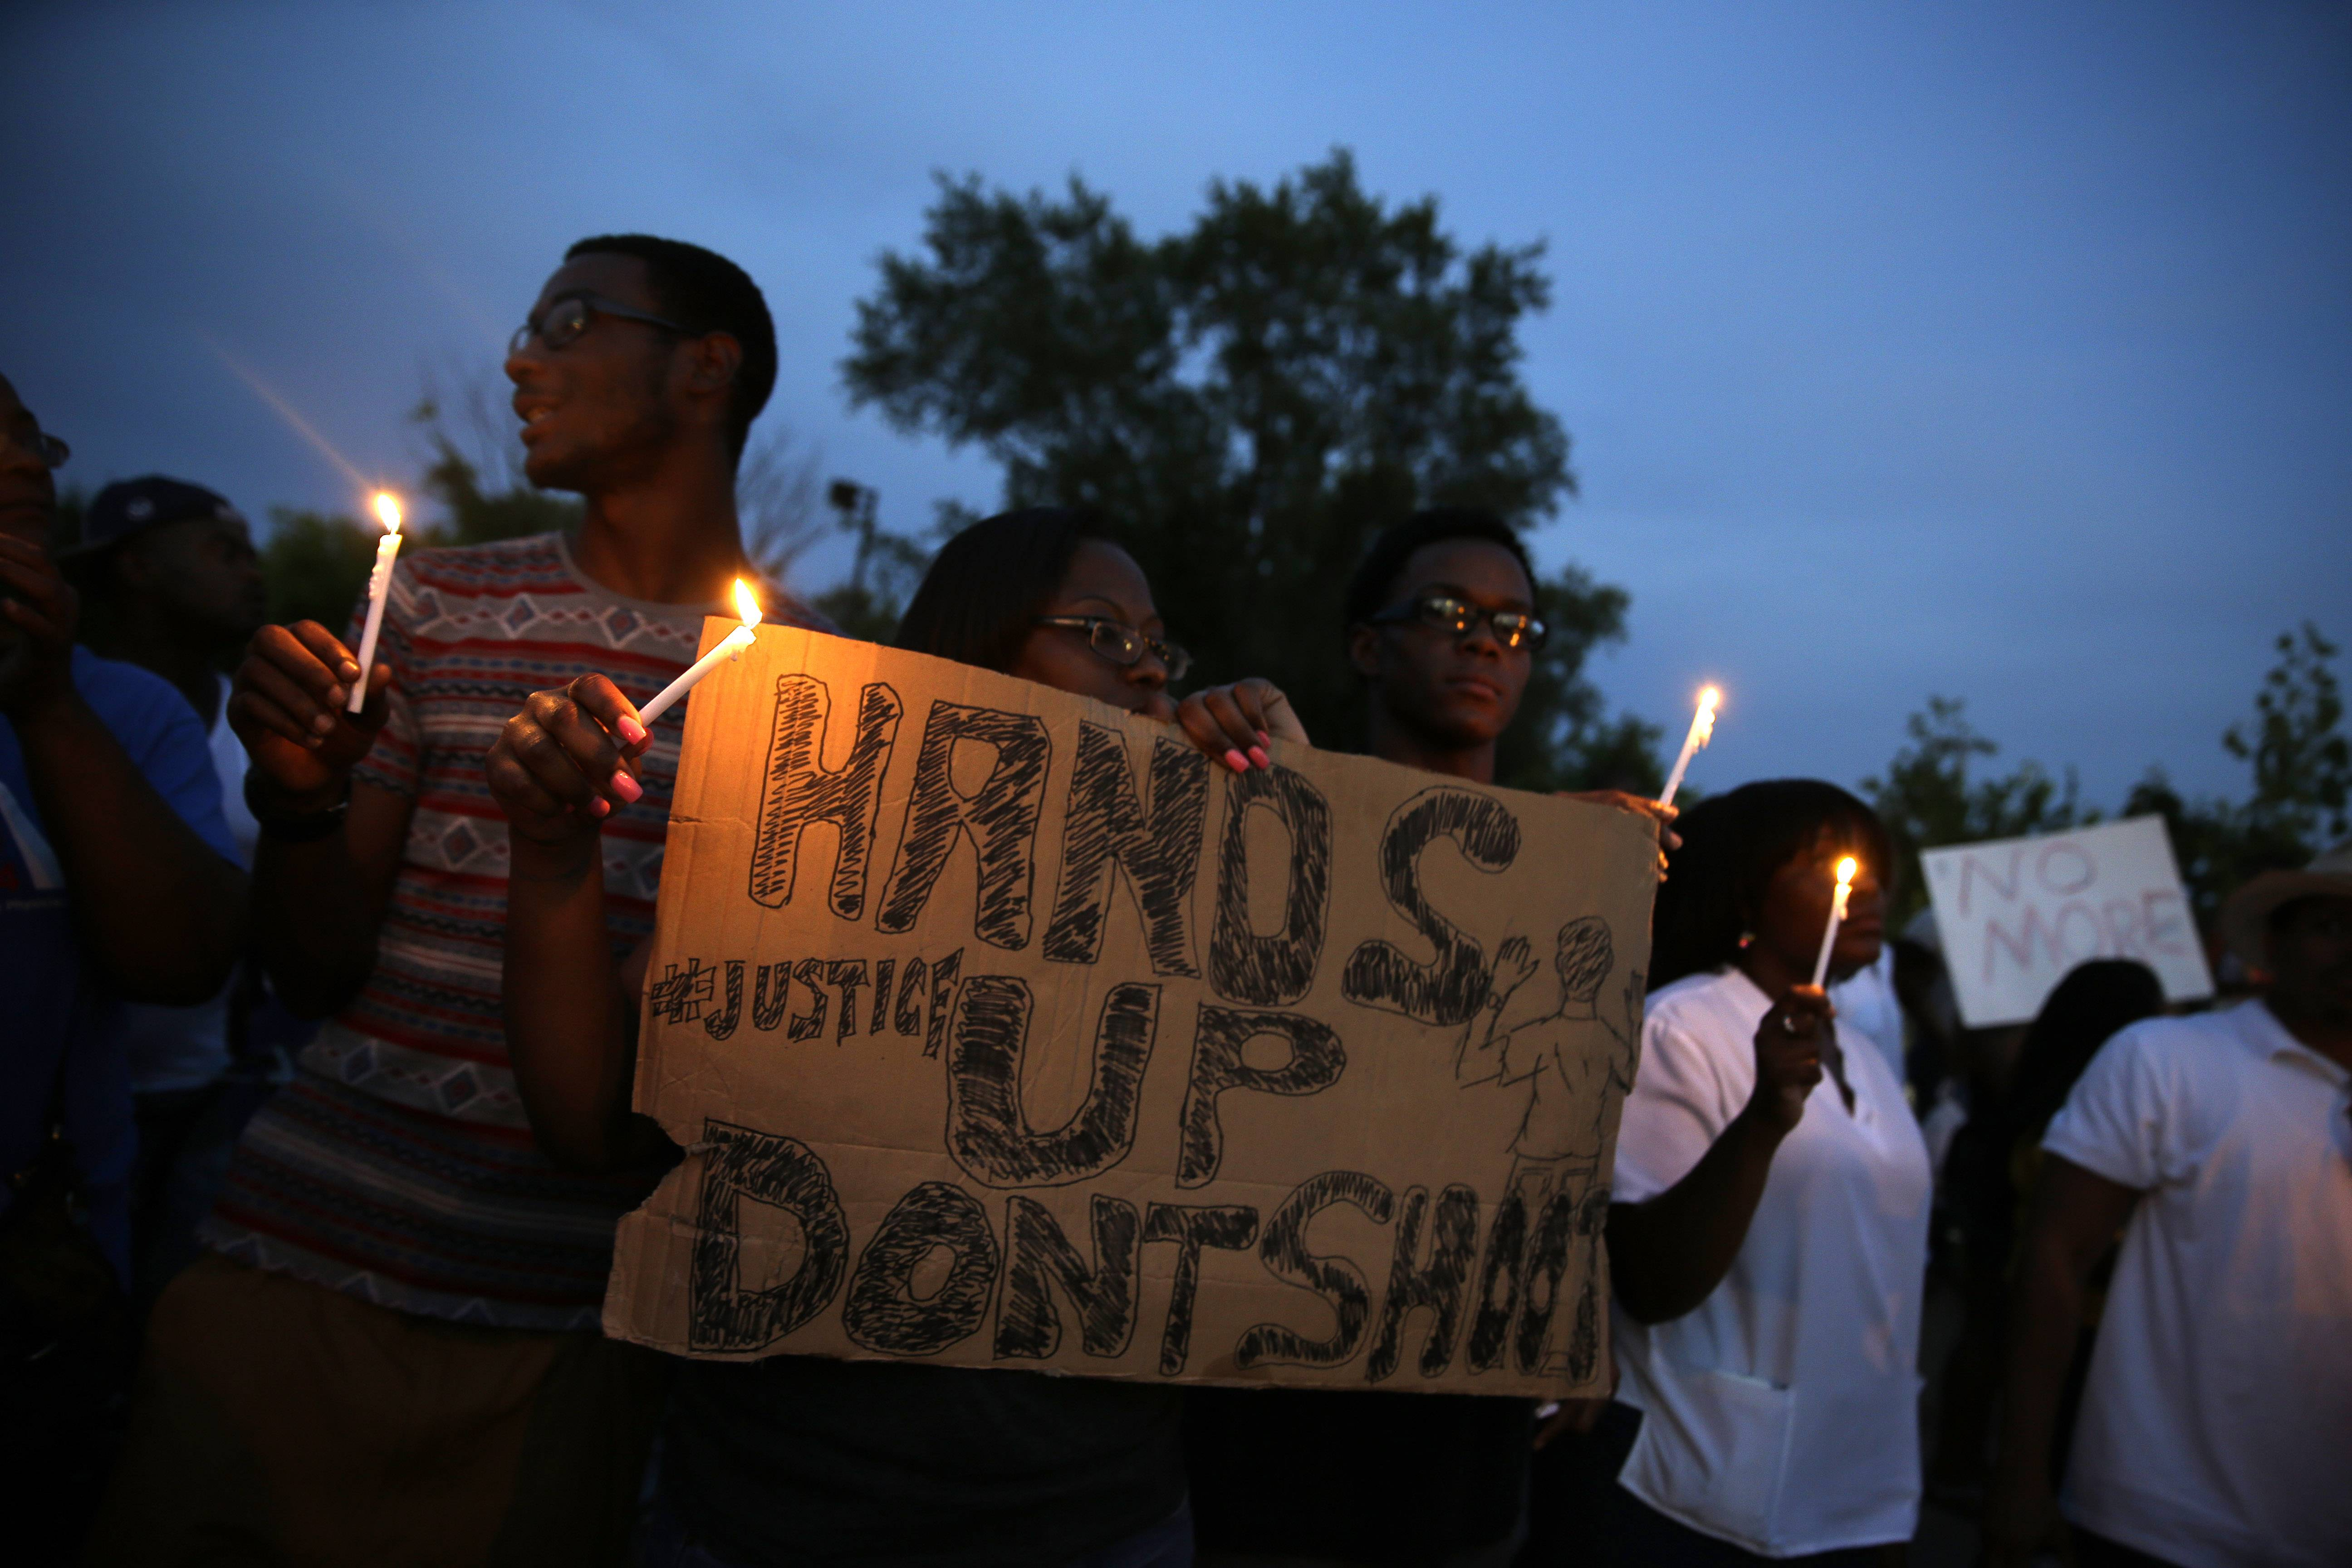 Demonstrators hold candles and signs Thursday, Aug. 14, 2014, in Ferguson, Mo. Hundreds of people protesting the death of Michael Brown marched through the streets of Ferguson alongside state troopers Thursday.